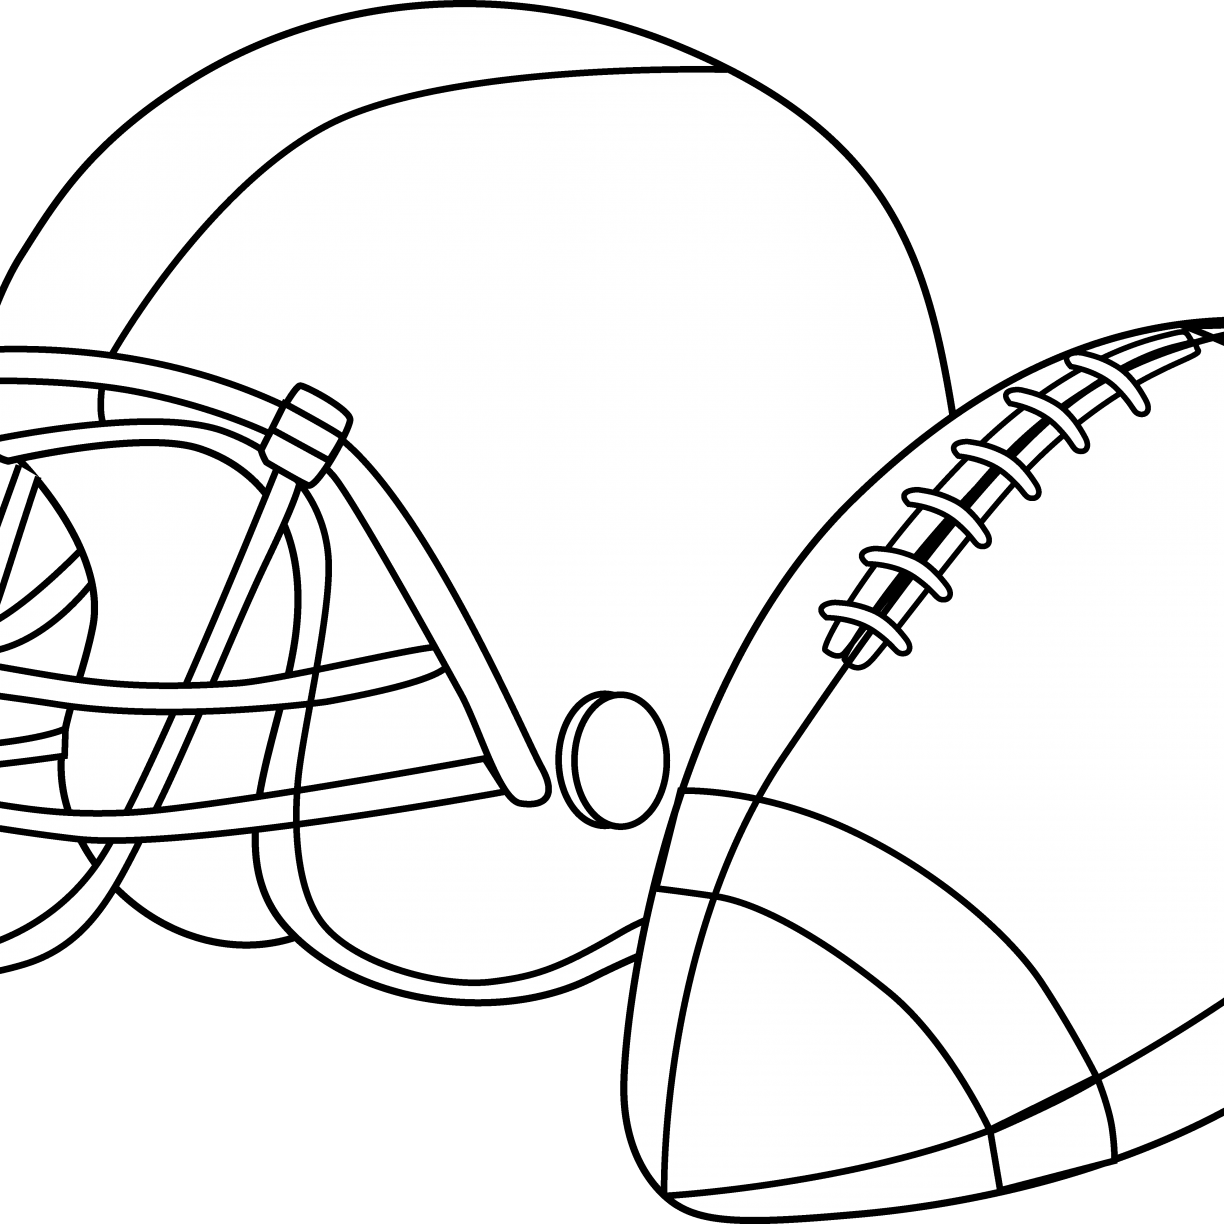 - Download Football Helmet Coloring Pages Preschool Denver Broncos